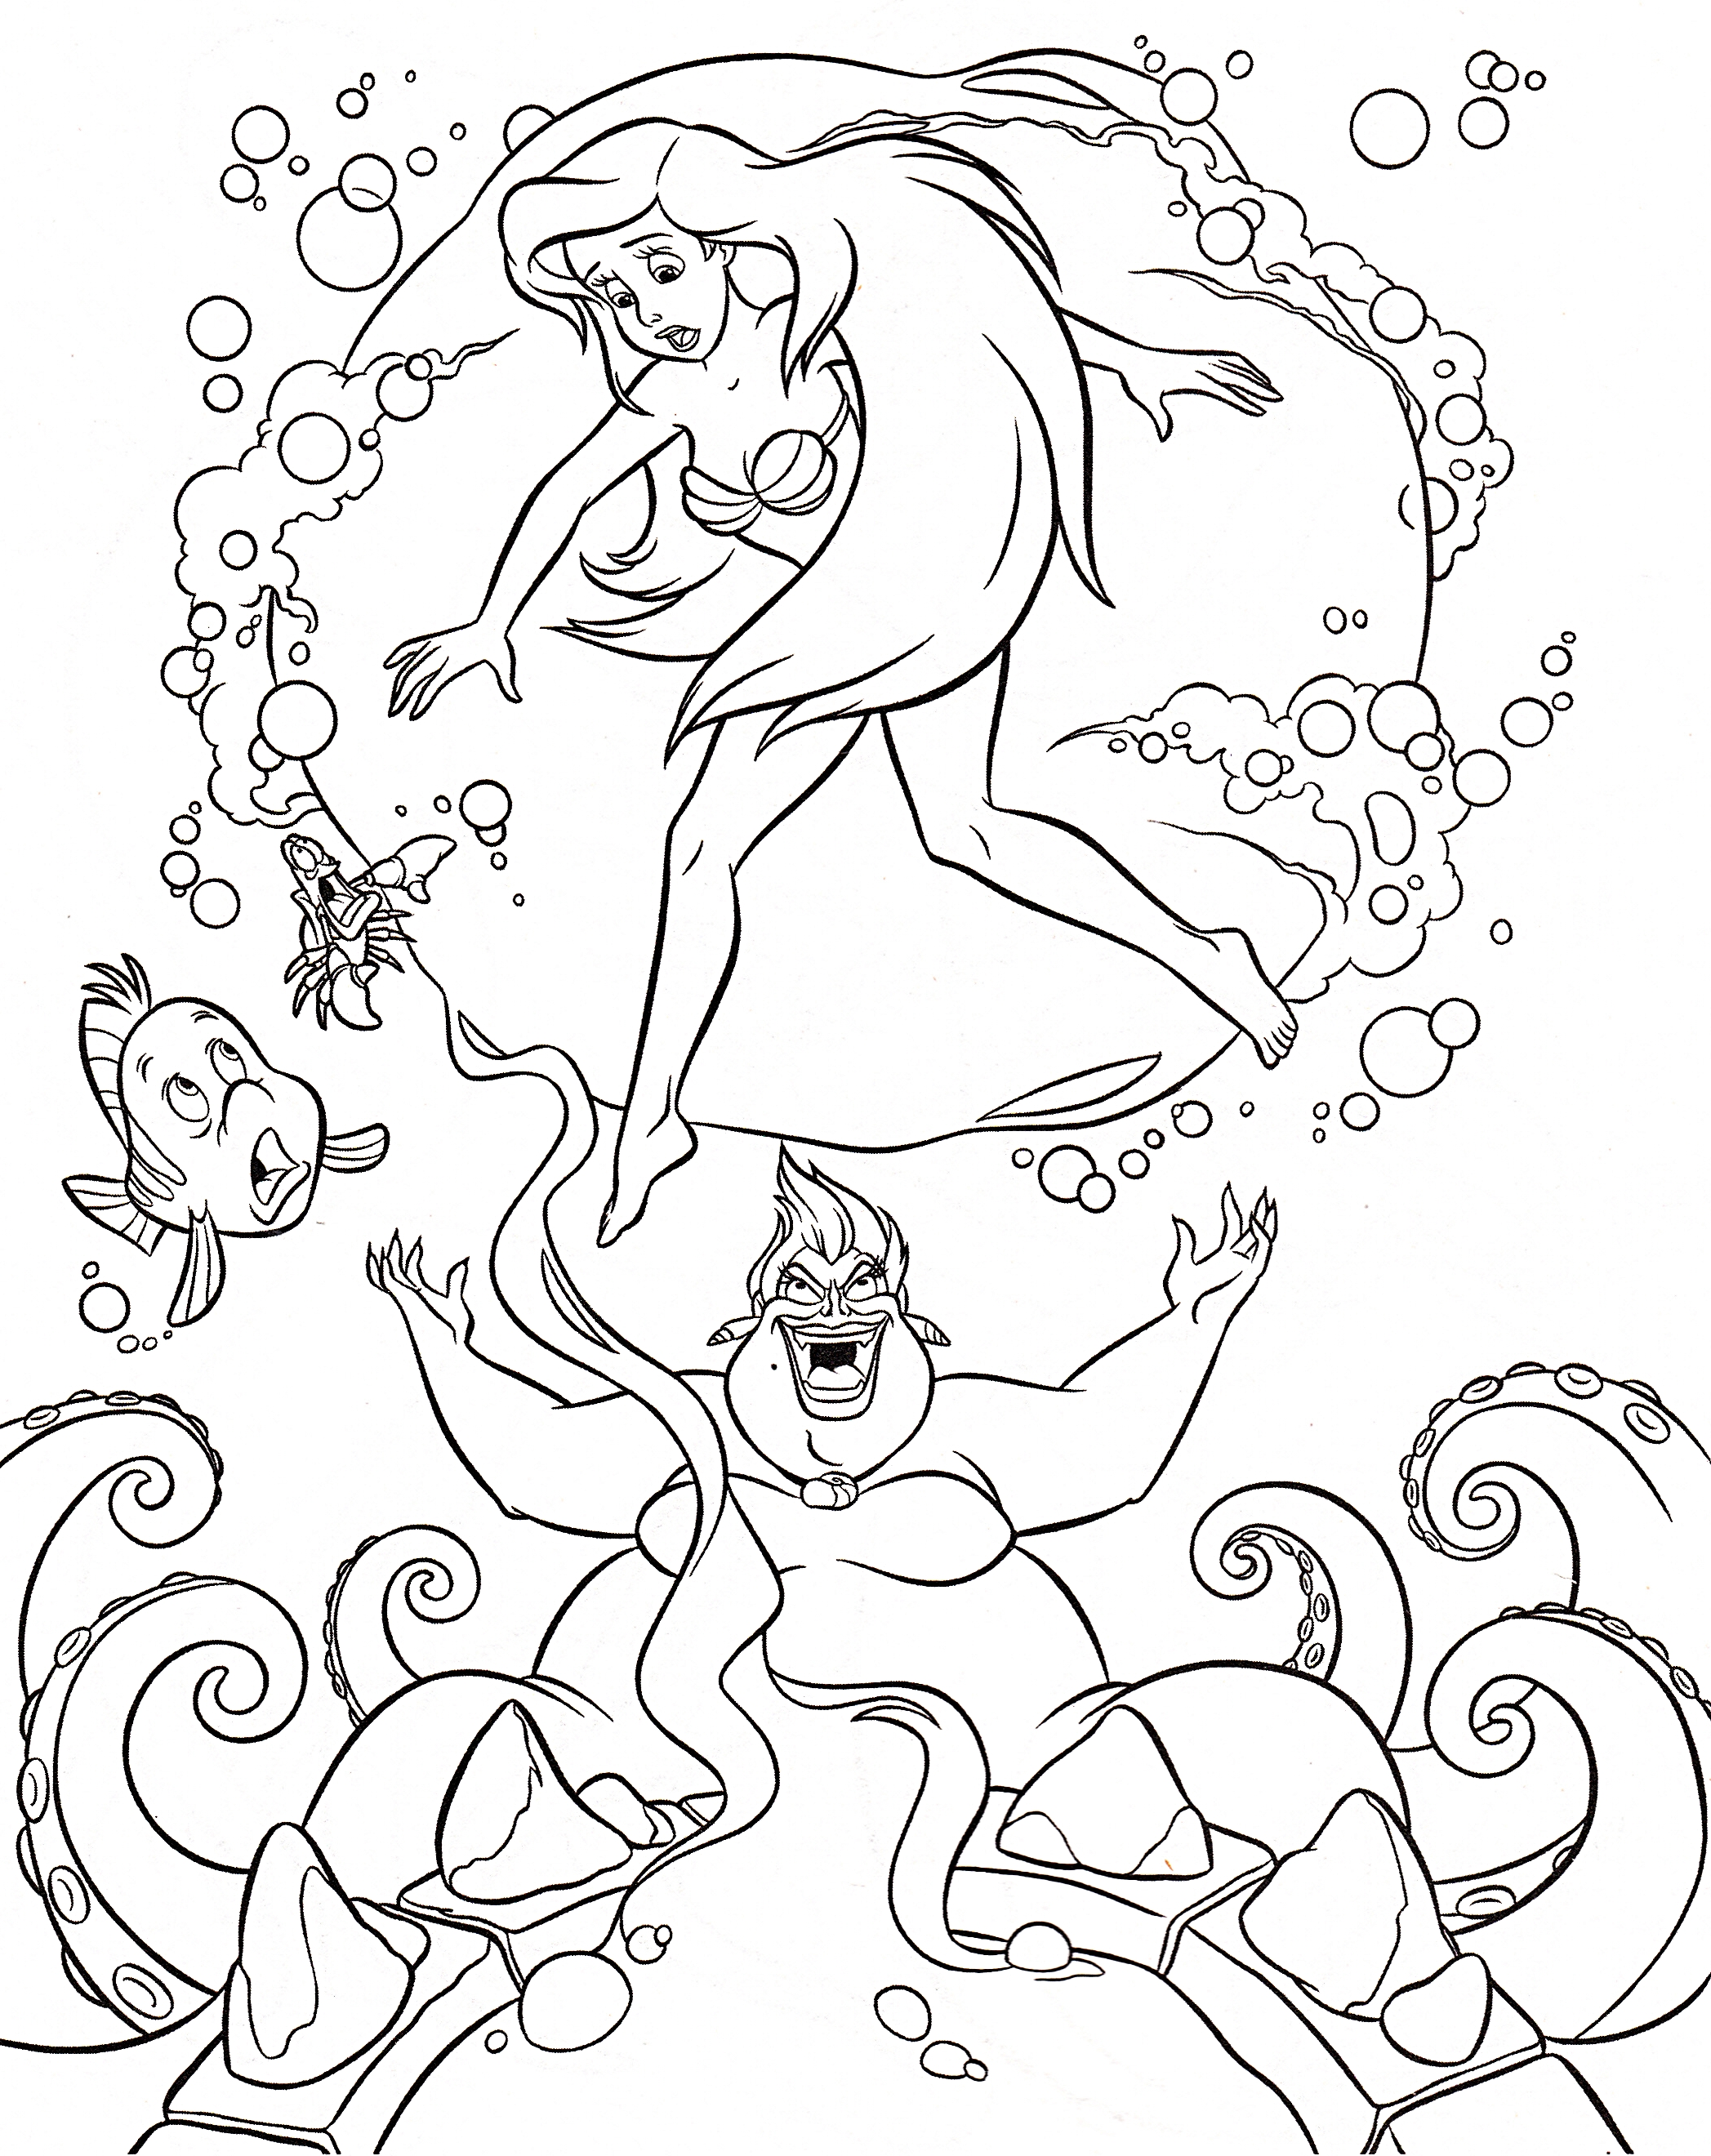 ursula little mermaid coloring pages - photo#6